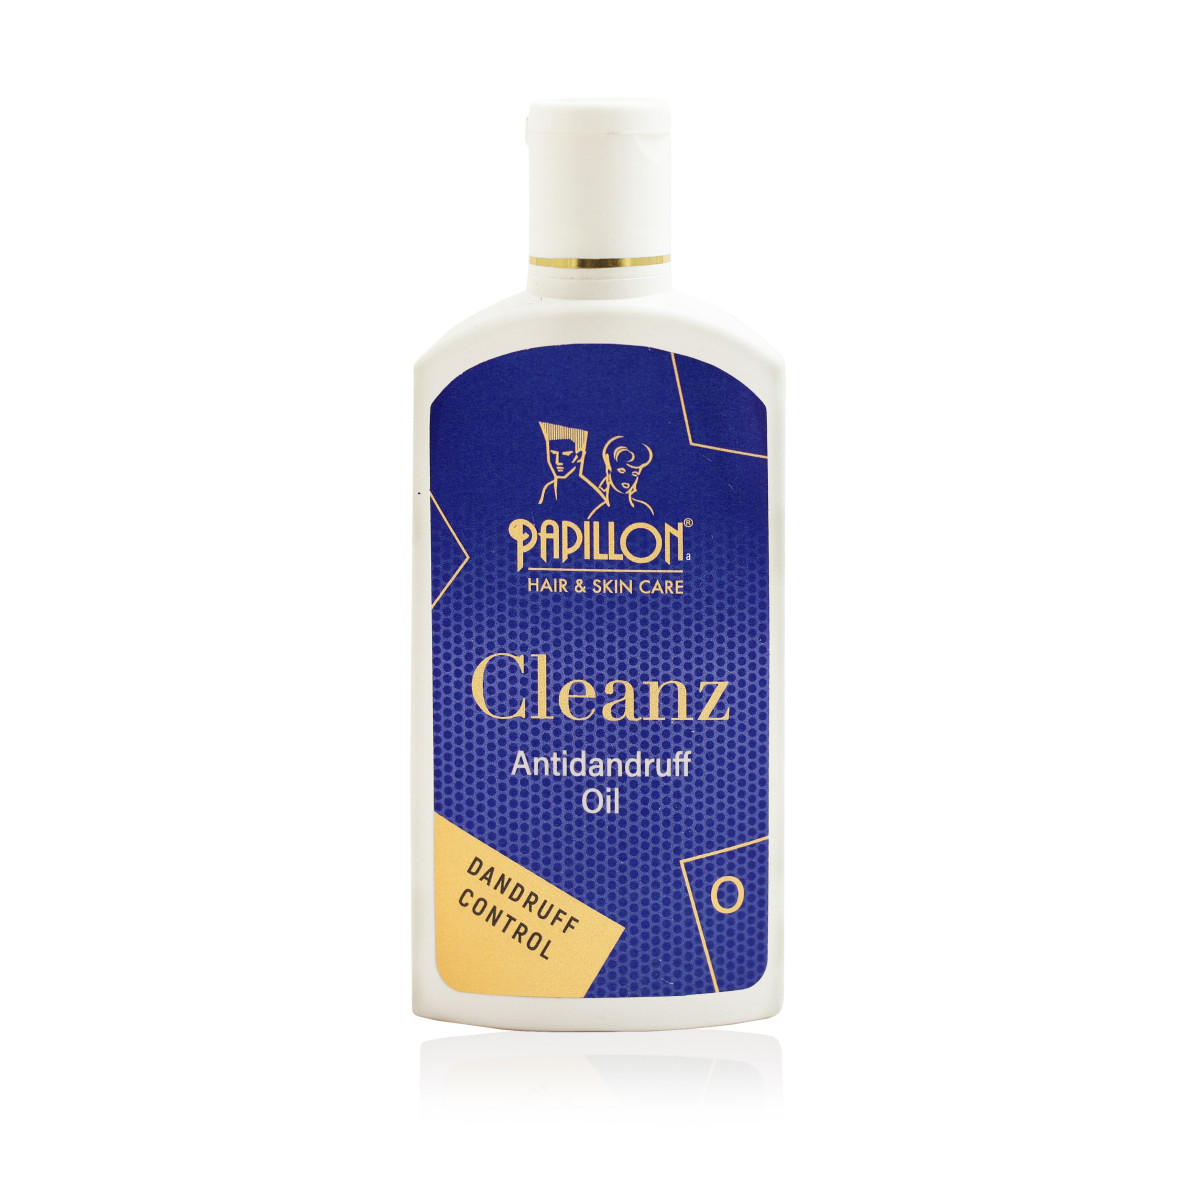 Cleanz Dandruff Control Kit